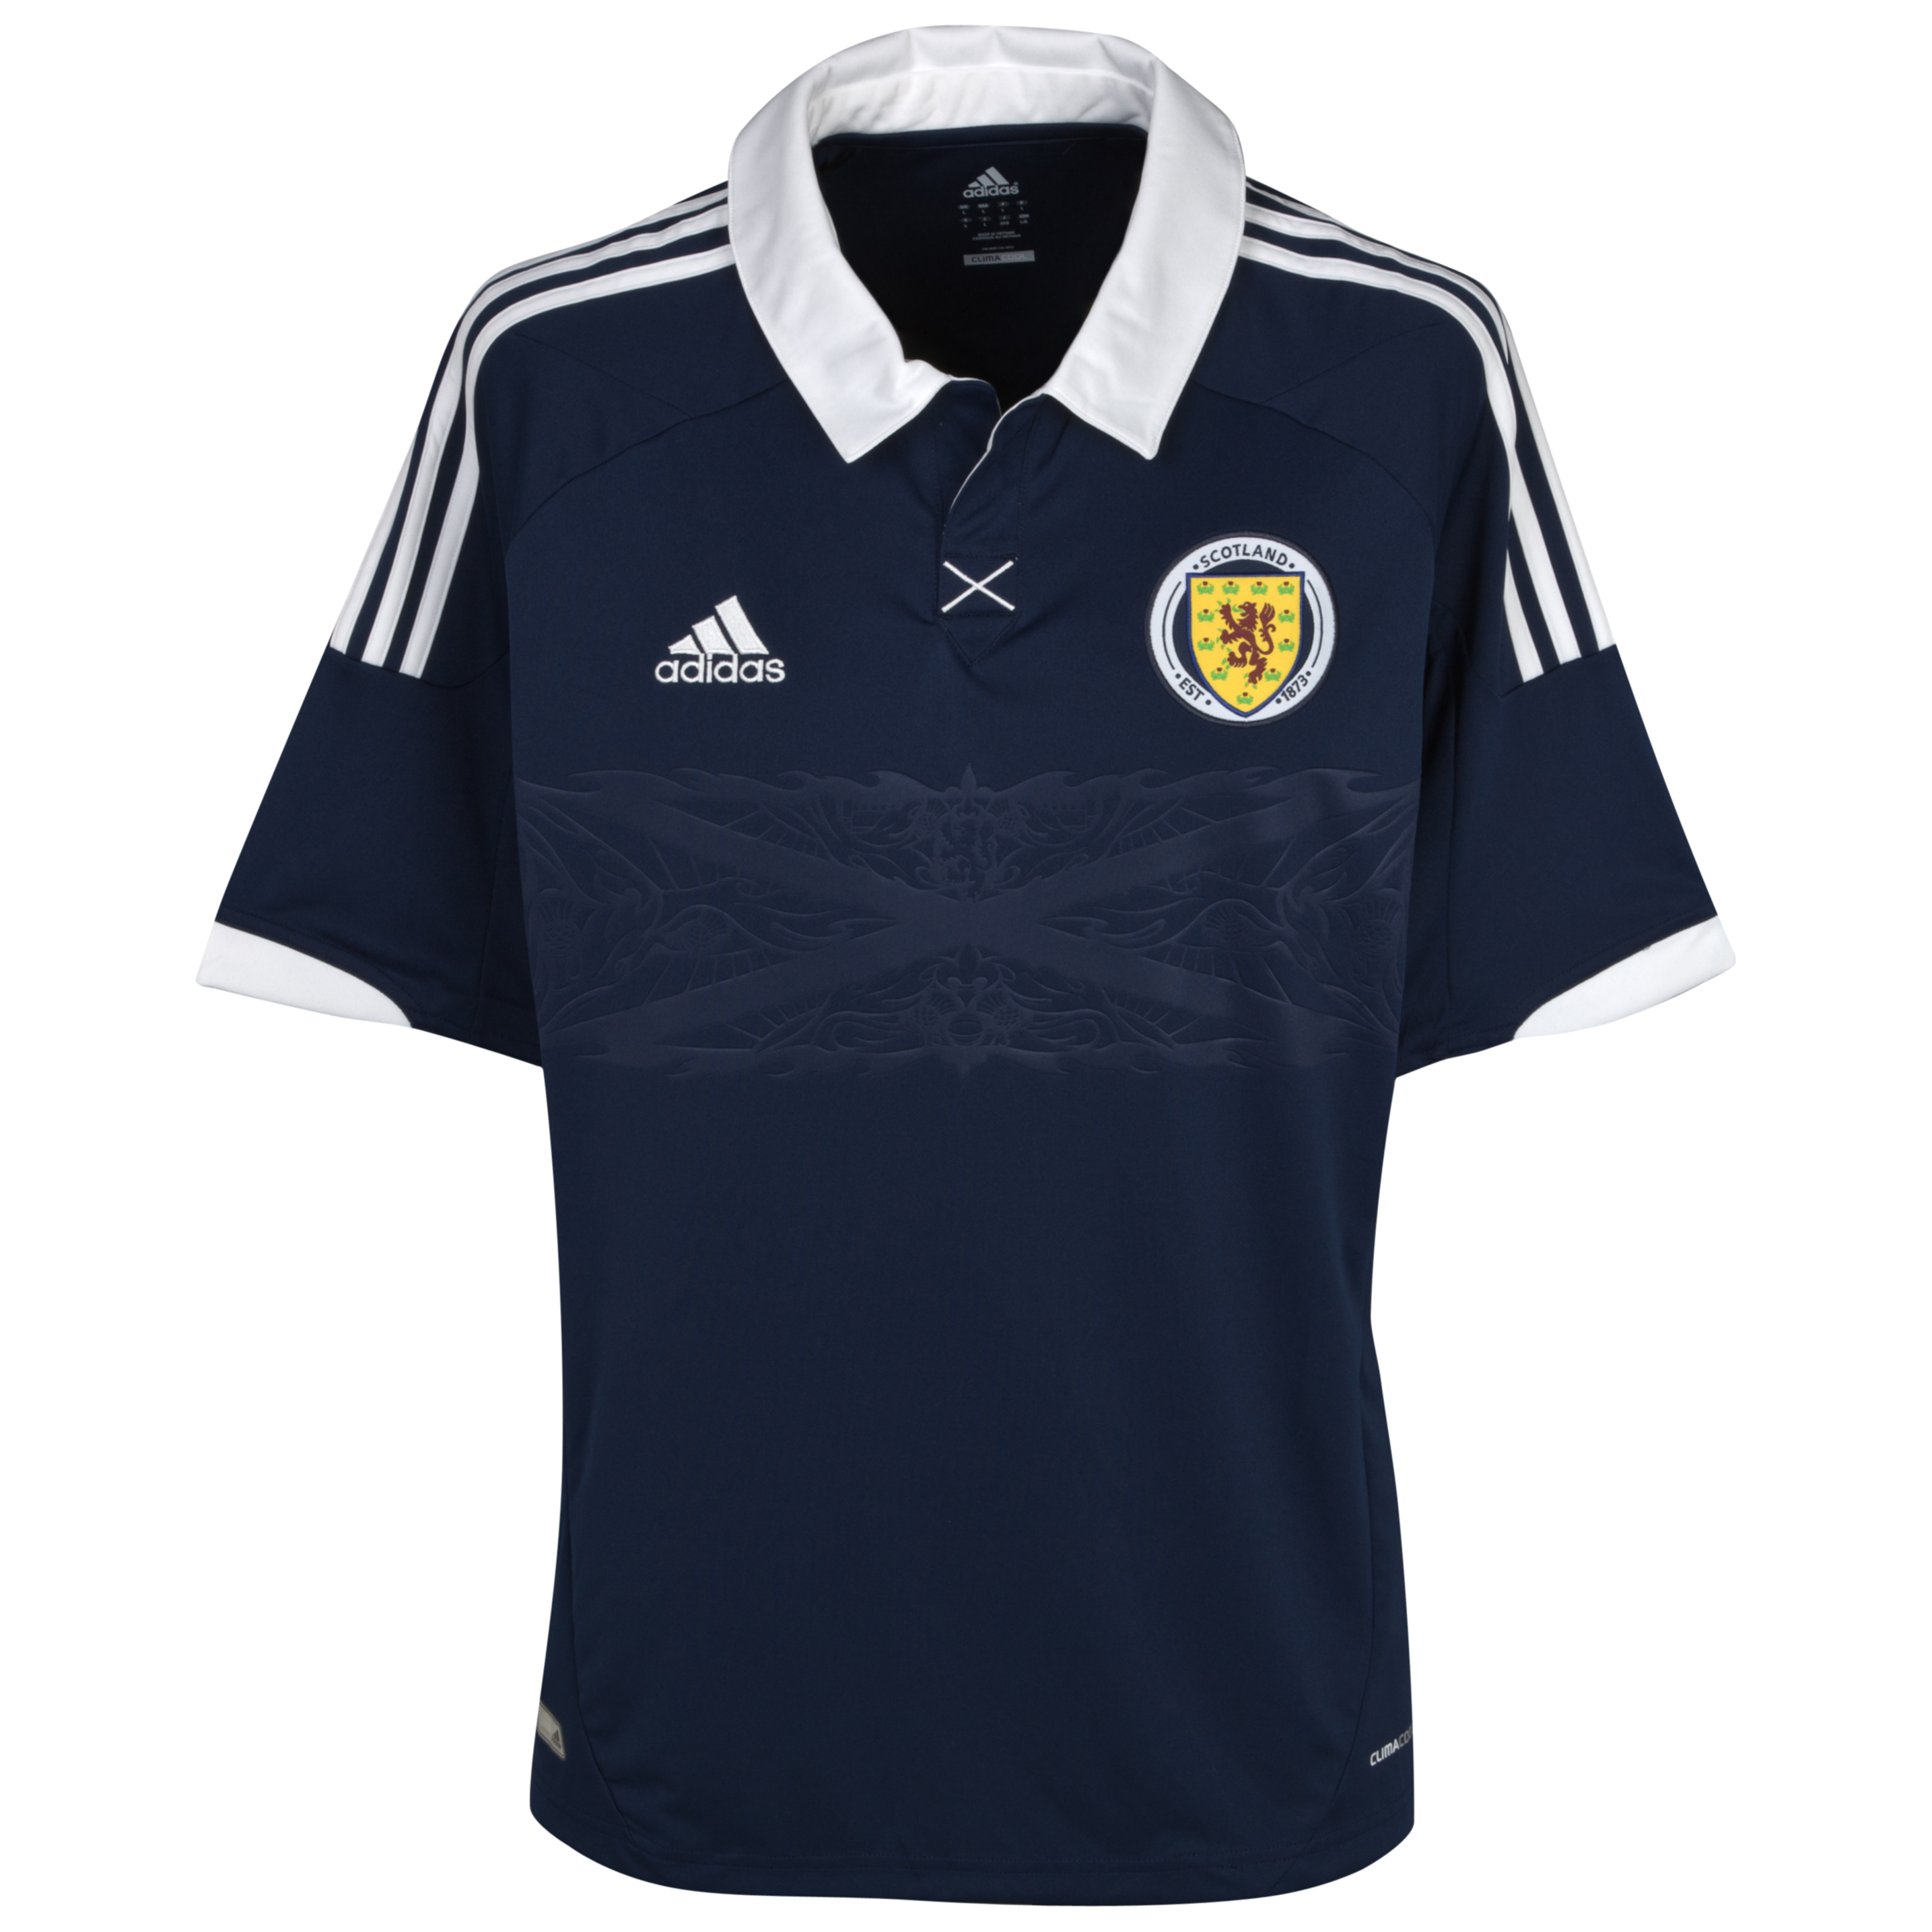 Scotland Home Shirt 2012/14 - Dark Indigo/White